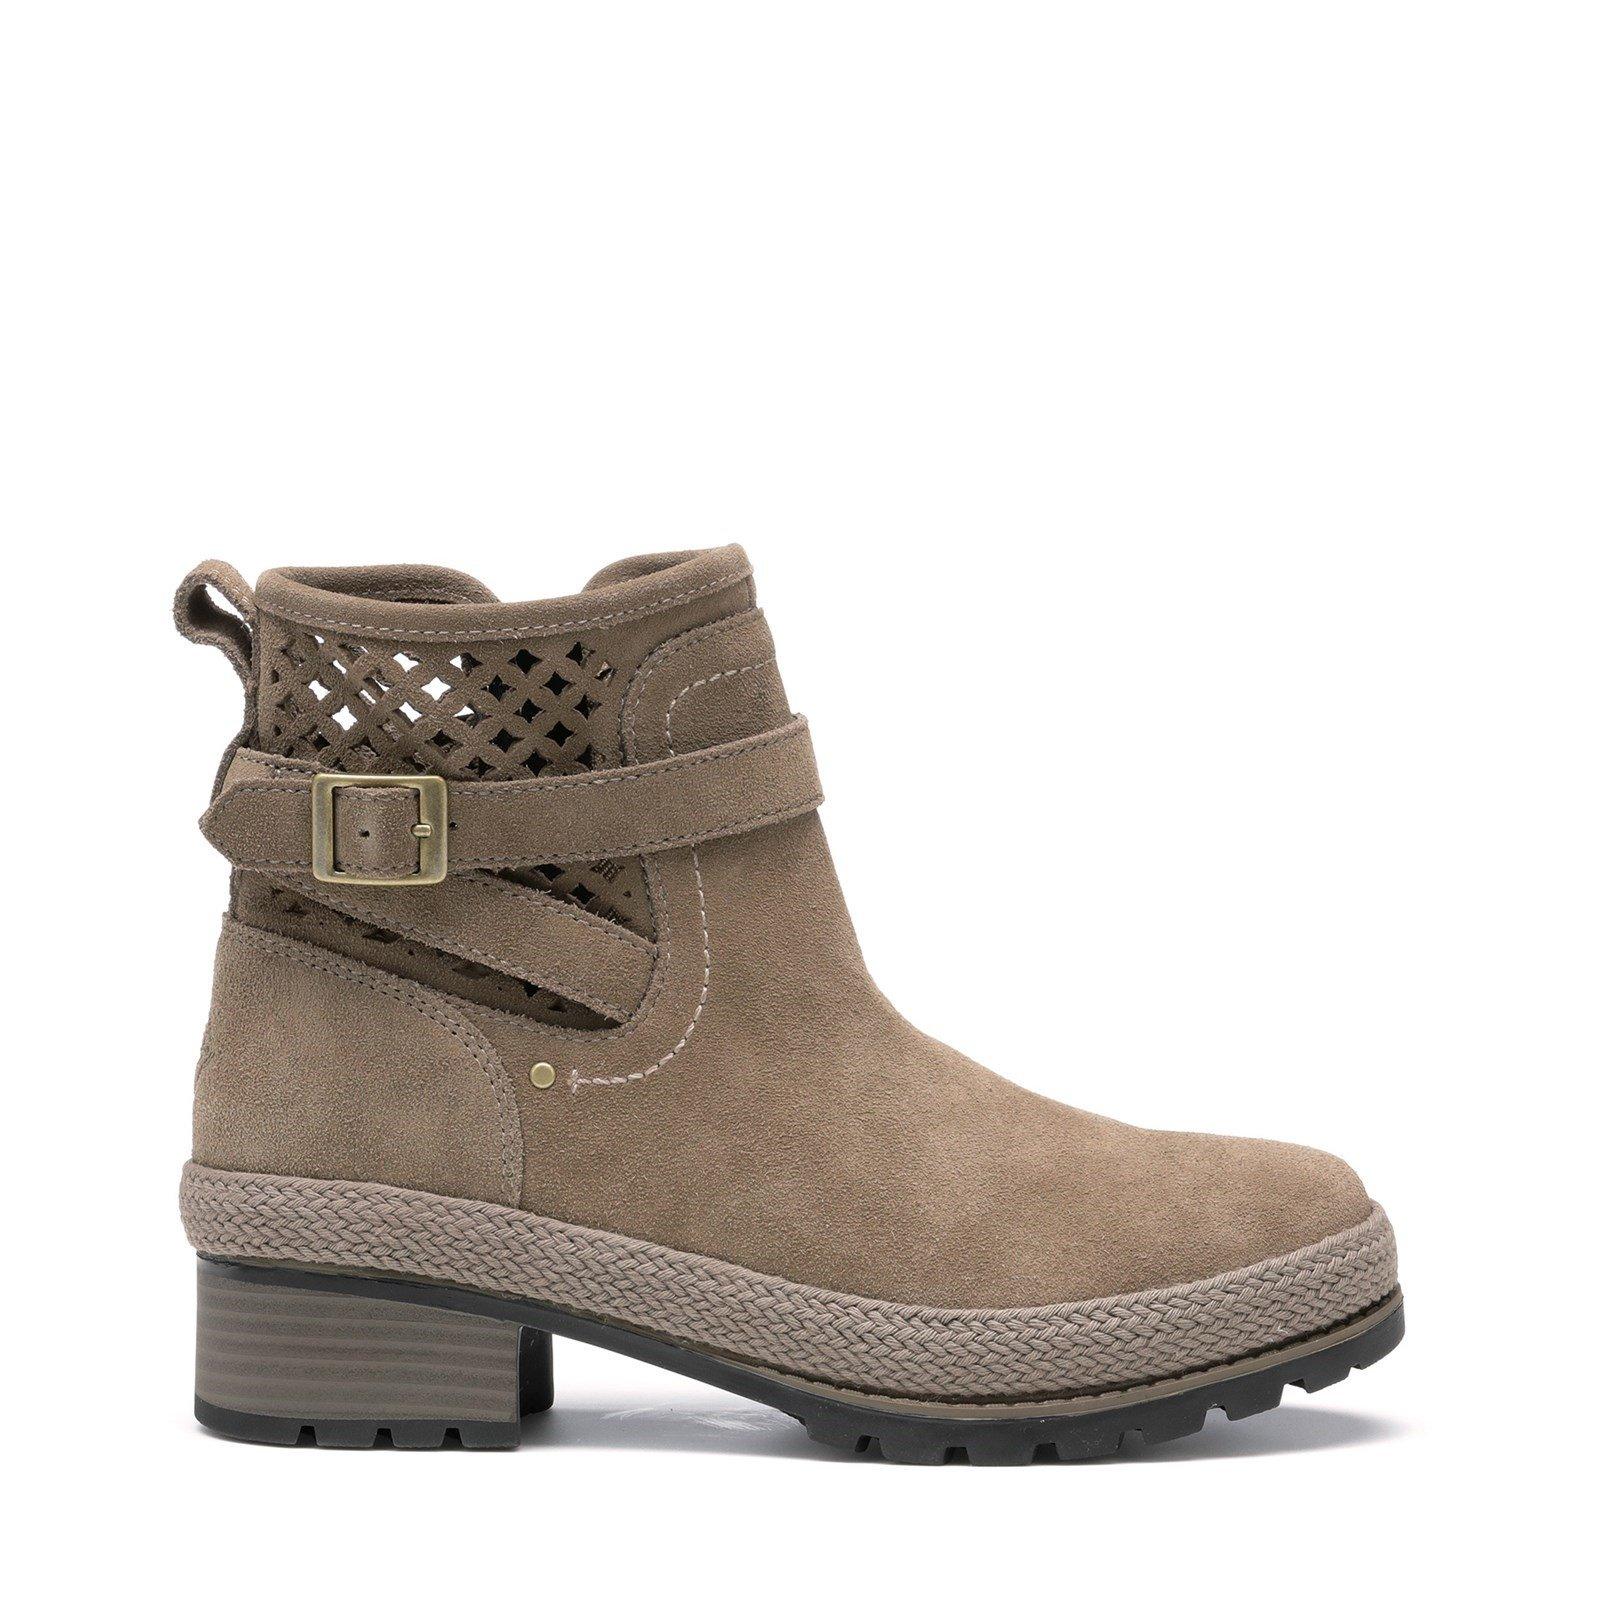 Muck Boots Women's Liberty Perforated Leather Boots Various Colours 31814 - Grey 6.5